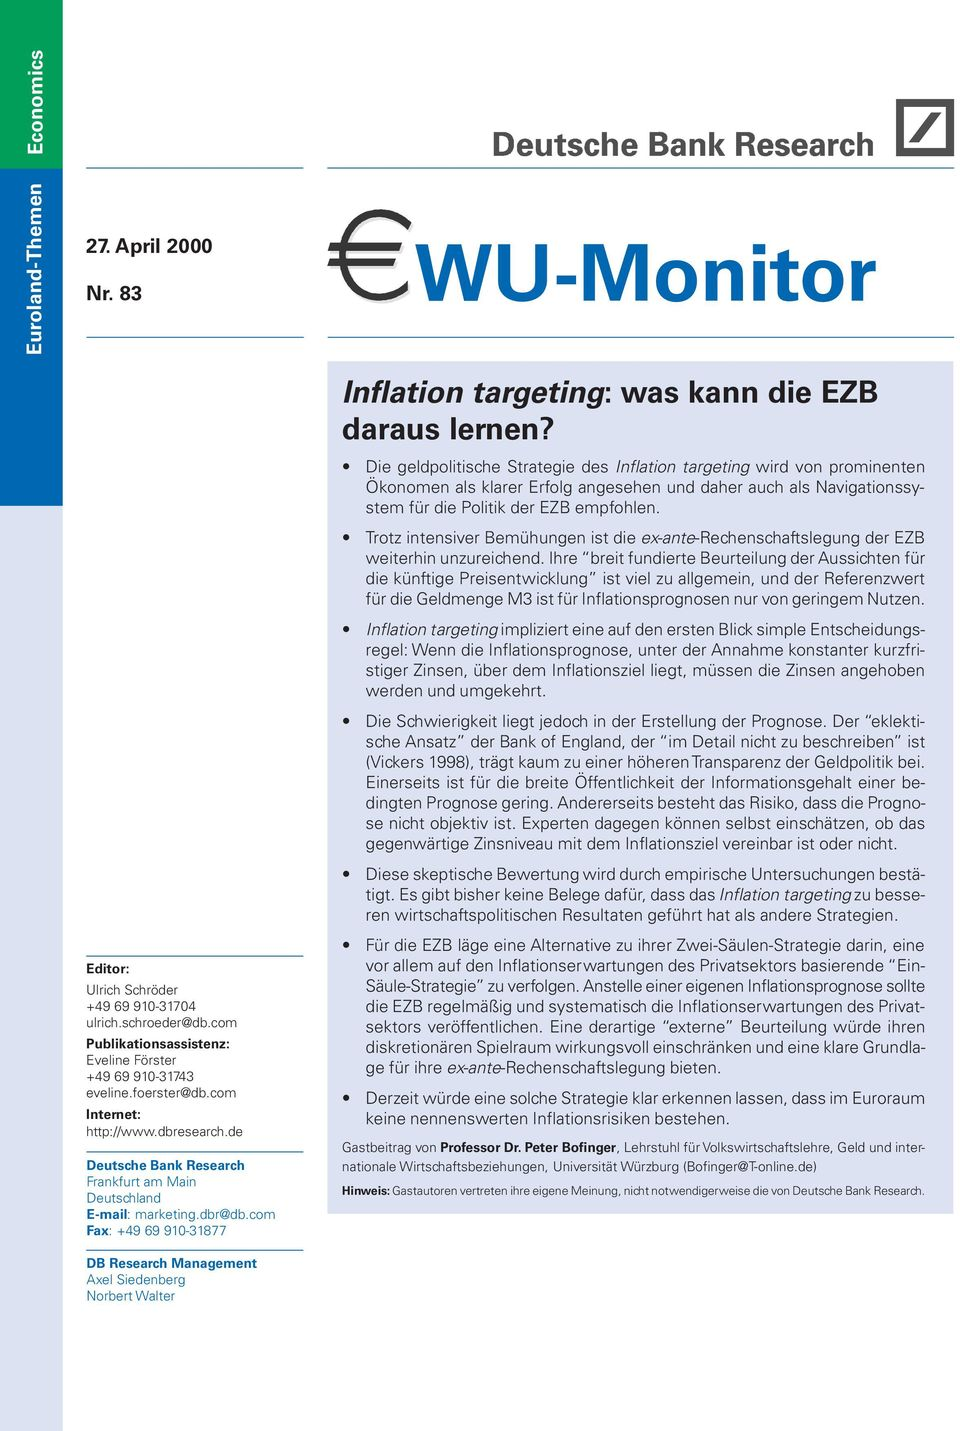 com Fax: +49 69 910-31877 DB Research Management Axel Siedenberg Norbert Walter WU-Monitor Inflation targeting: was kann die EZB daraus lernen?